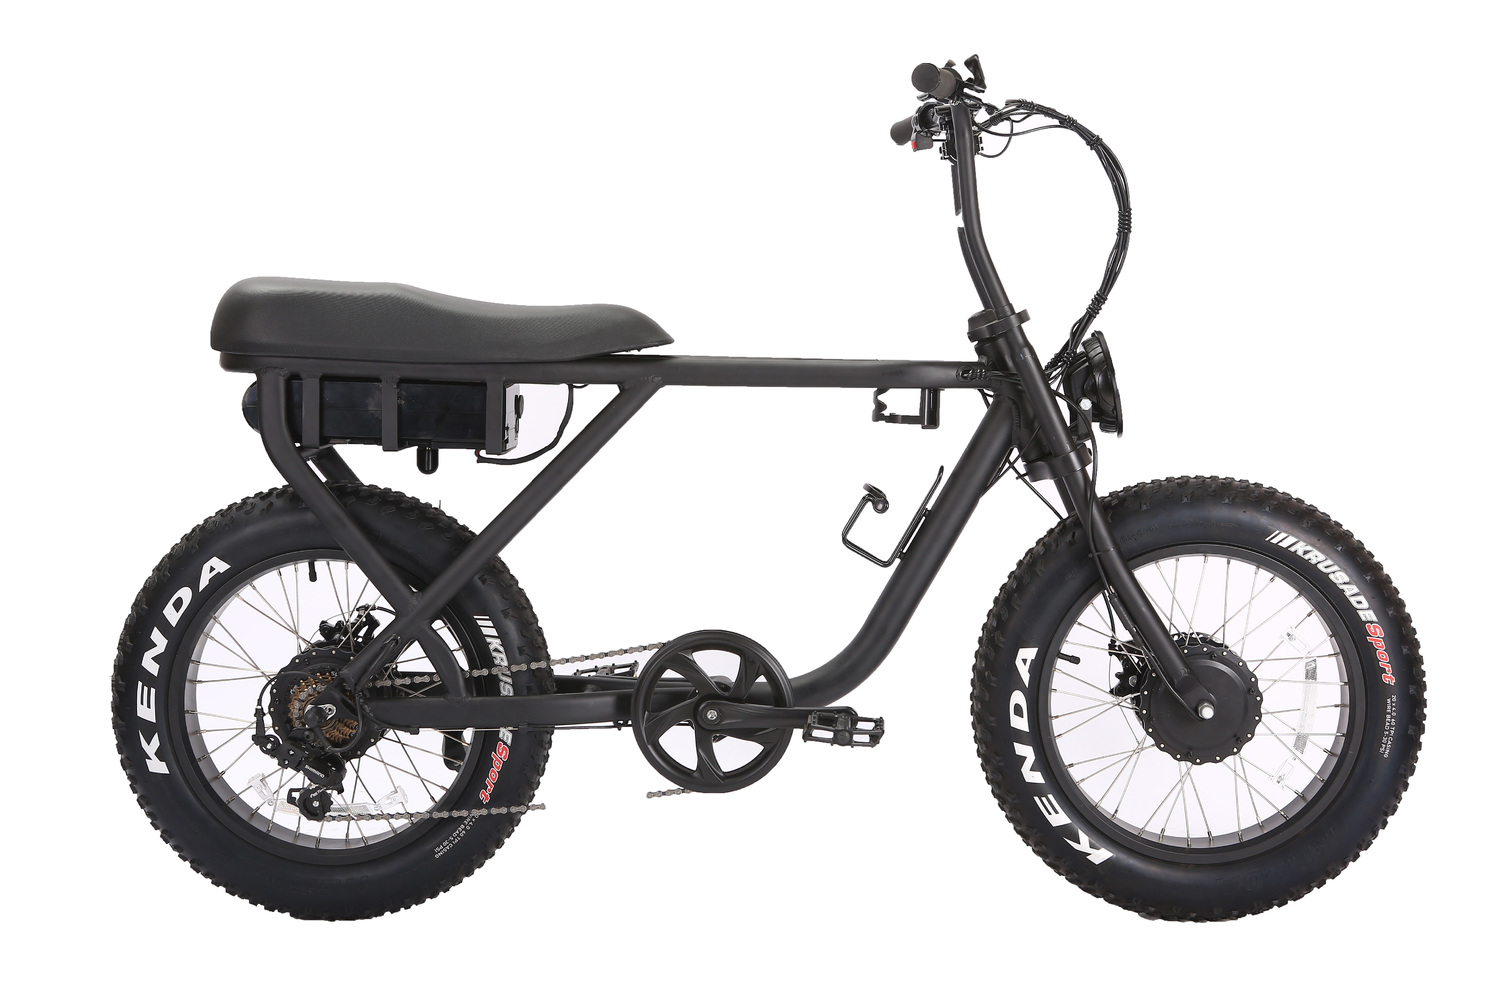 delivery V-B08MFood shimano gear electric bike retro style 750w 1